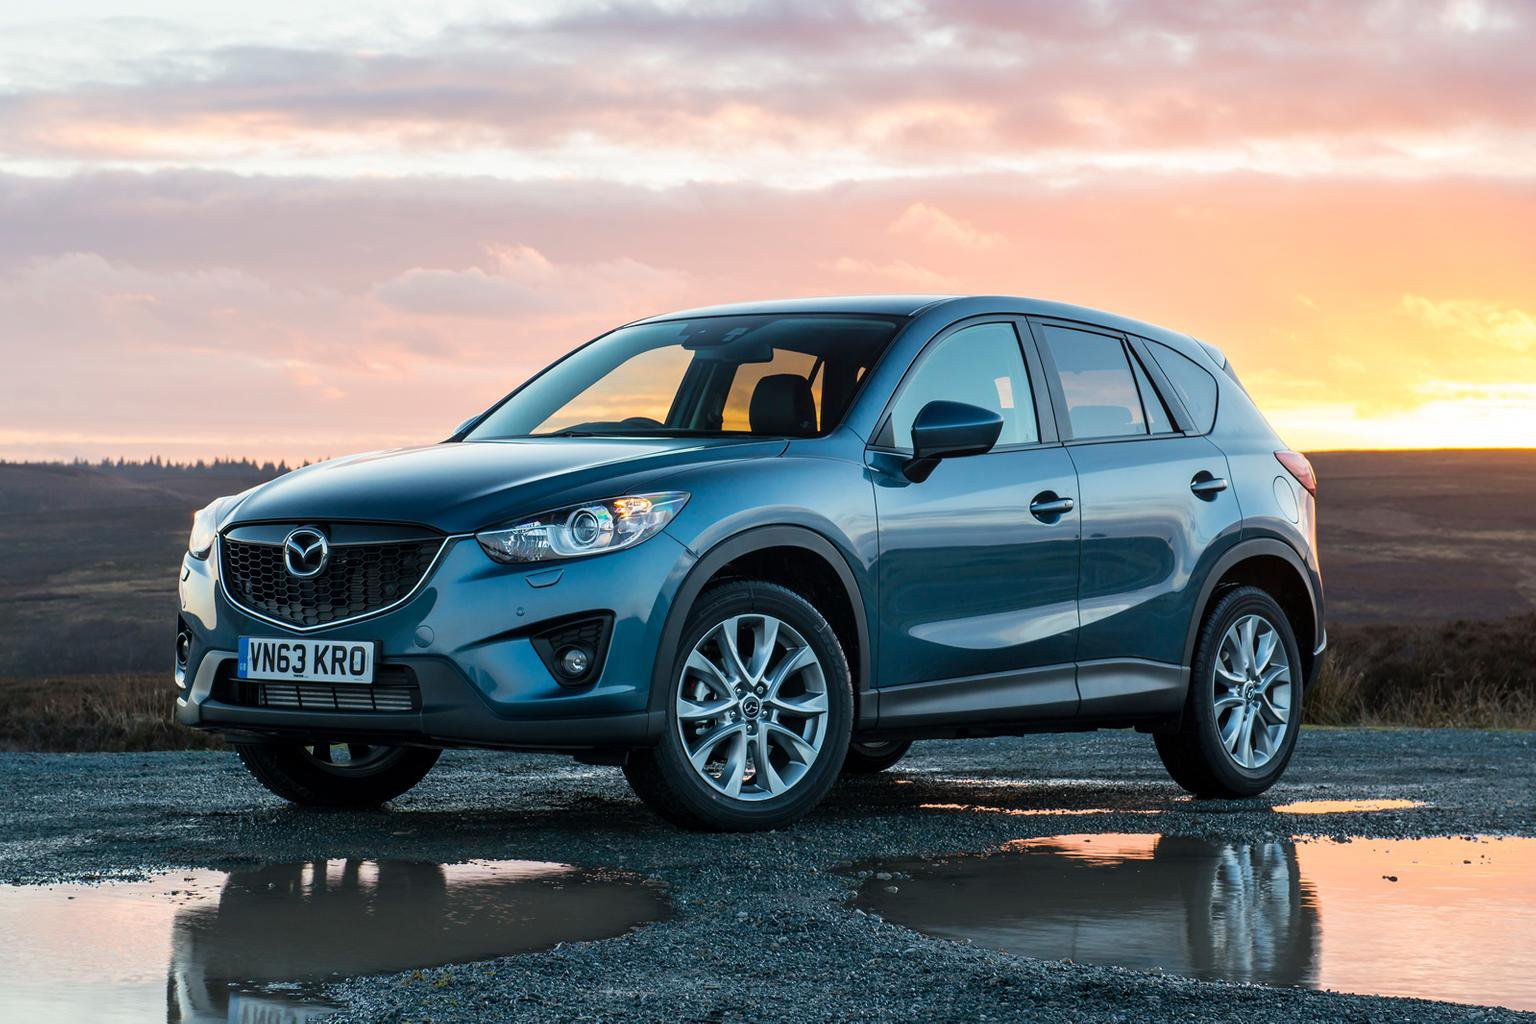 Mazda CX-5 ride and refinement improved for 2014